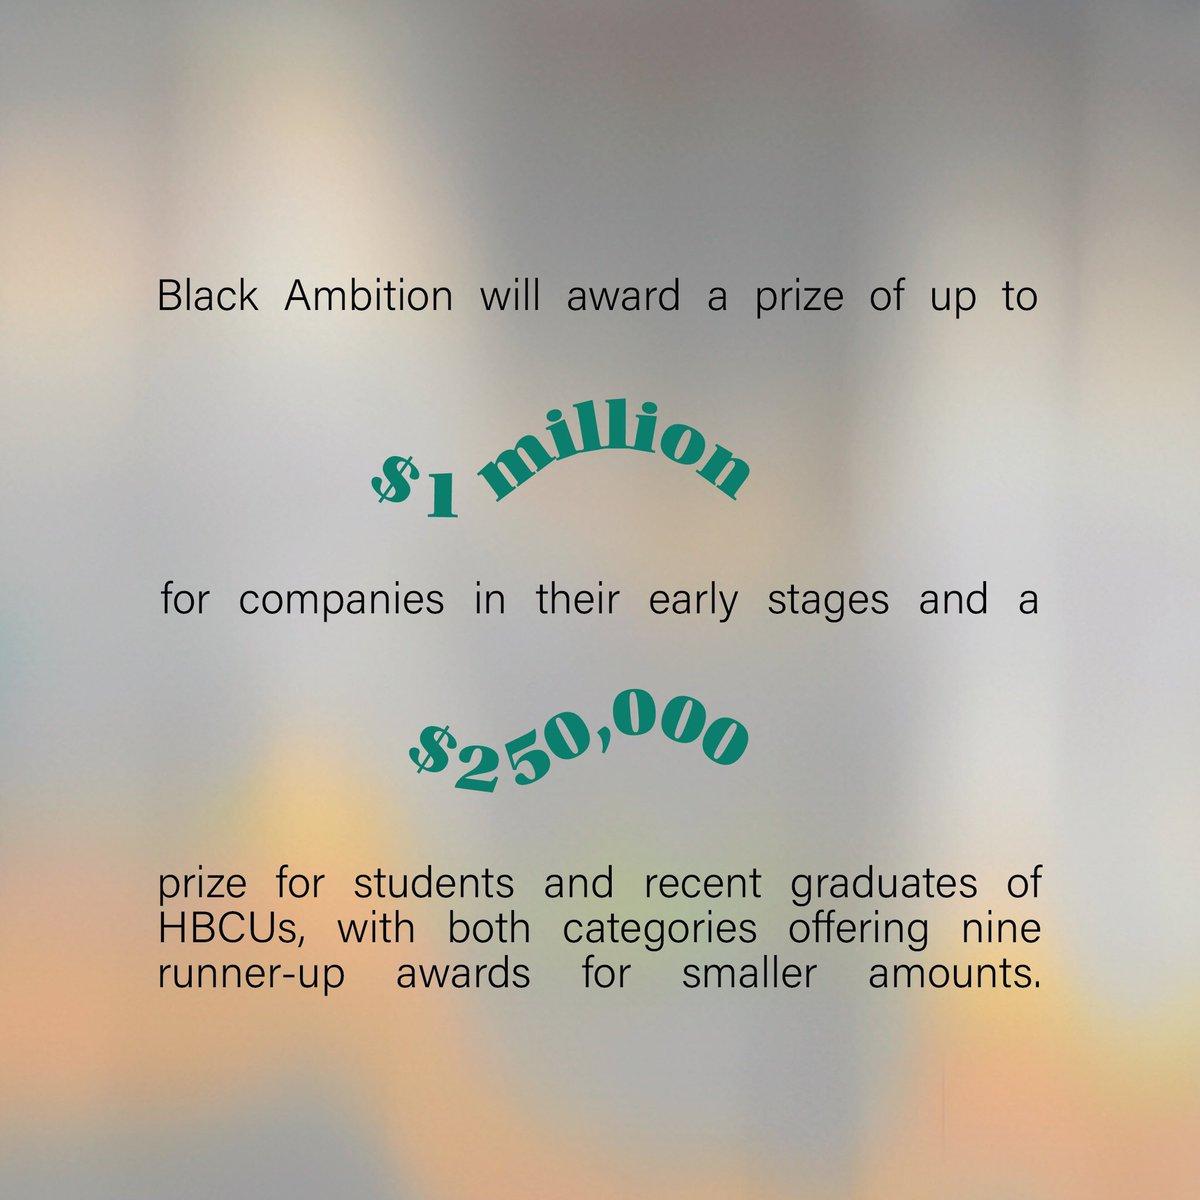 Pharrell's non-profit initiative, Black Ambition, aims to close the opportunity and wealth gap through entrepreneurship by investing capital and resources in high-growth startups founded by Black and Latinx entrepreneurs.